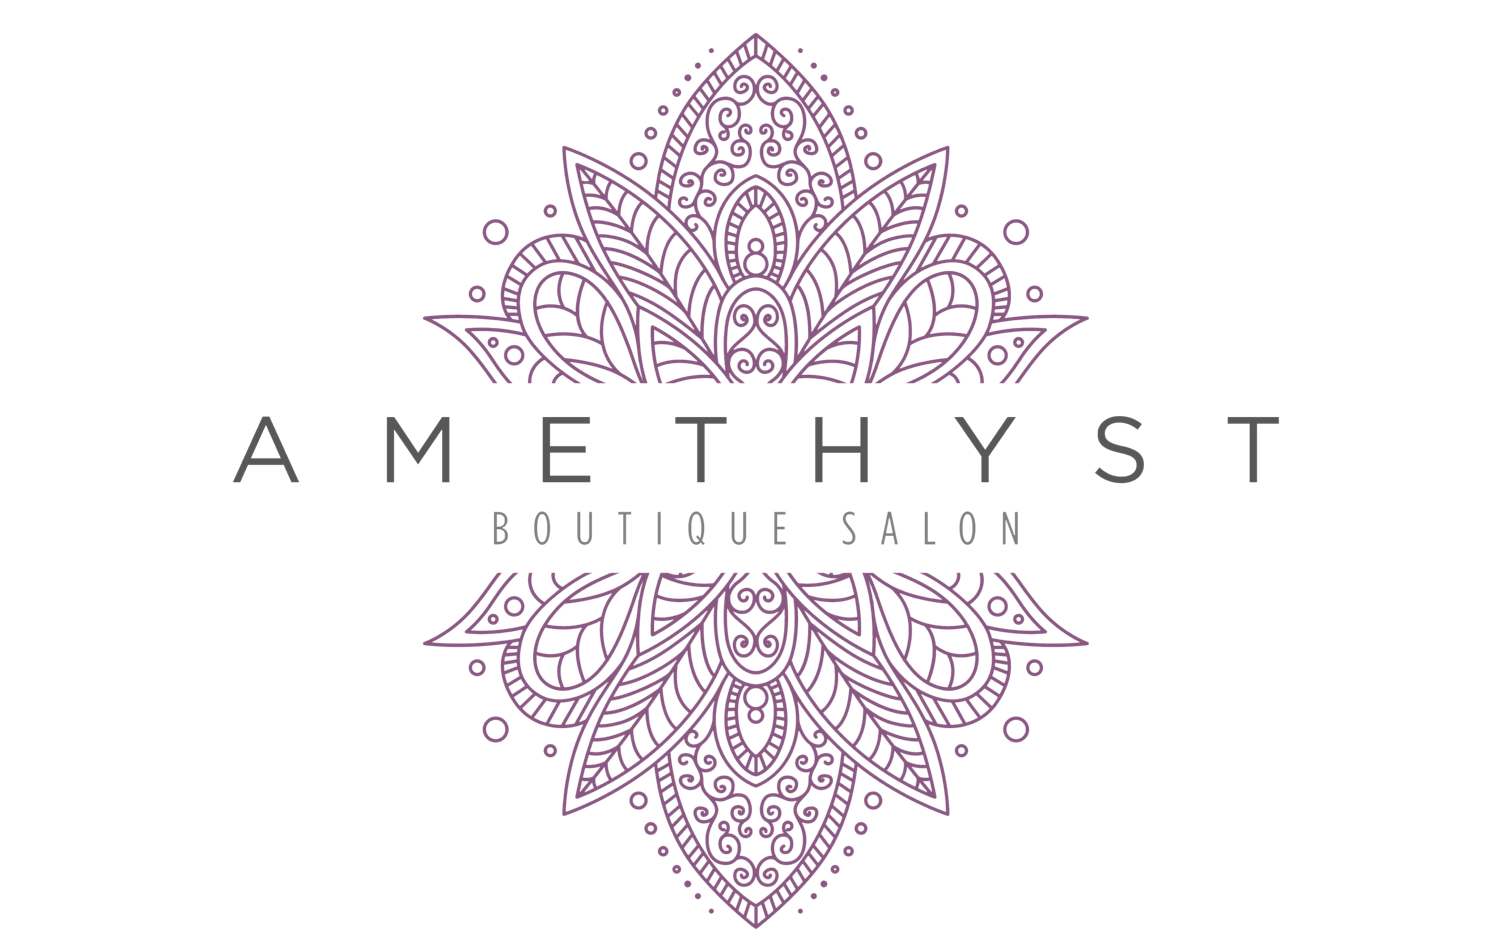 Amethyst Boutique Salon